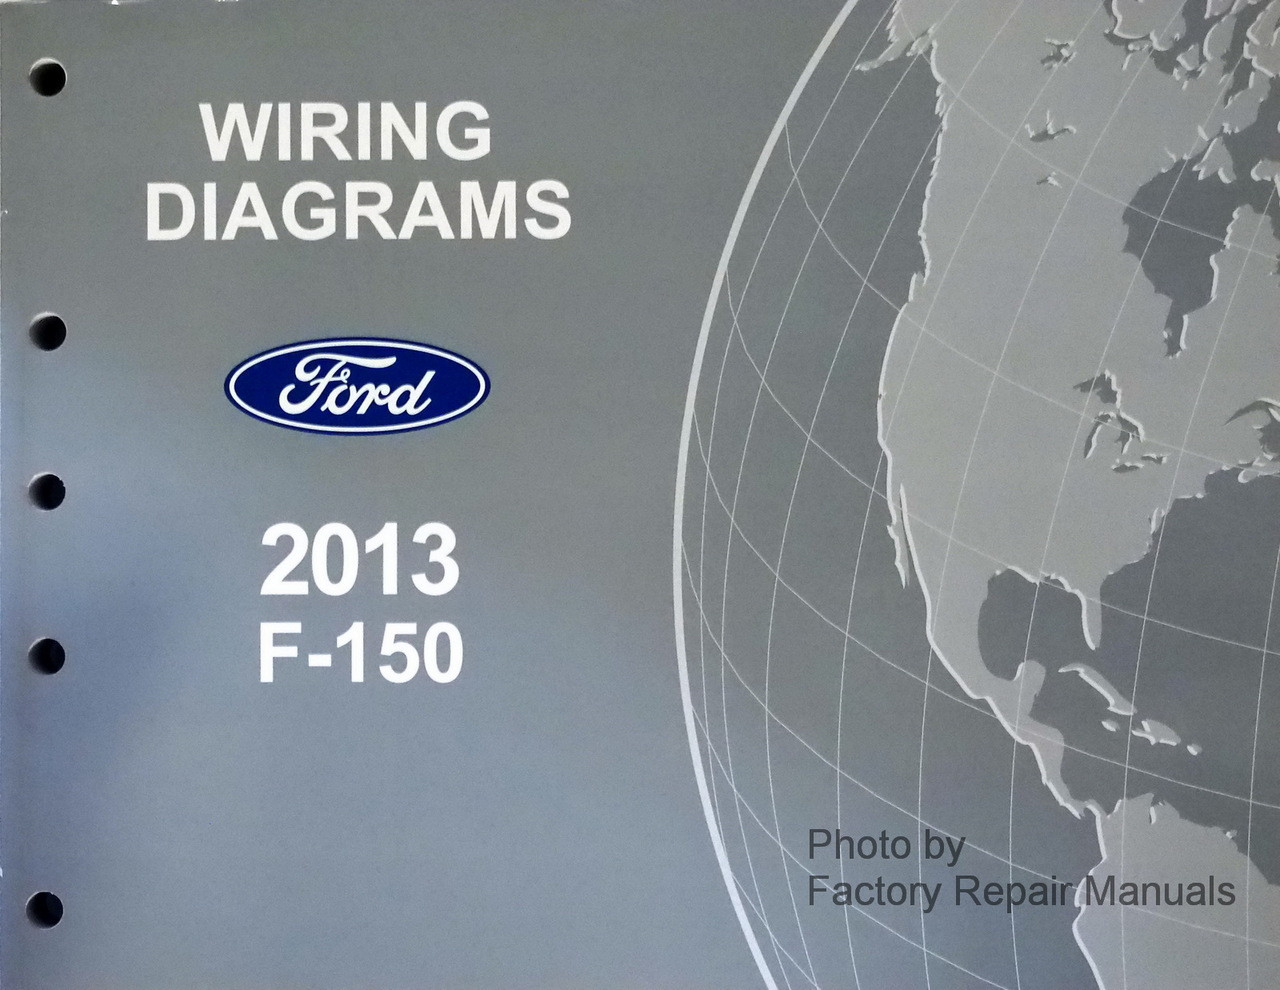 2013 Ford F-150 Electrical Wiring Diagrams Manual New - Factory Repair  Manuals | Ford F150 Wiring Diagrams |  | Factory Repair Manuals